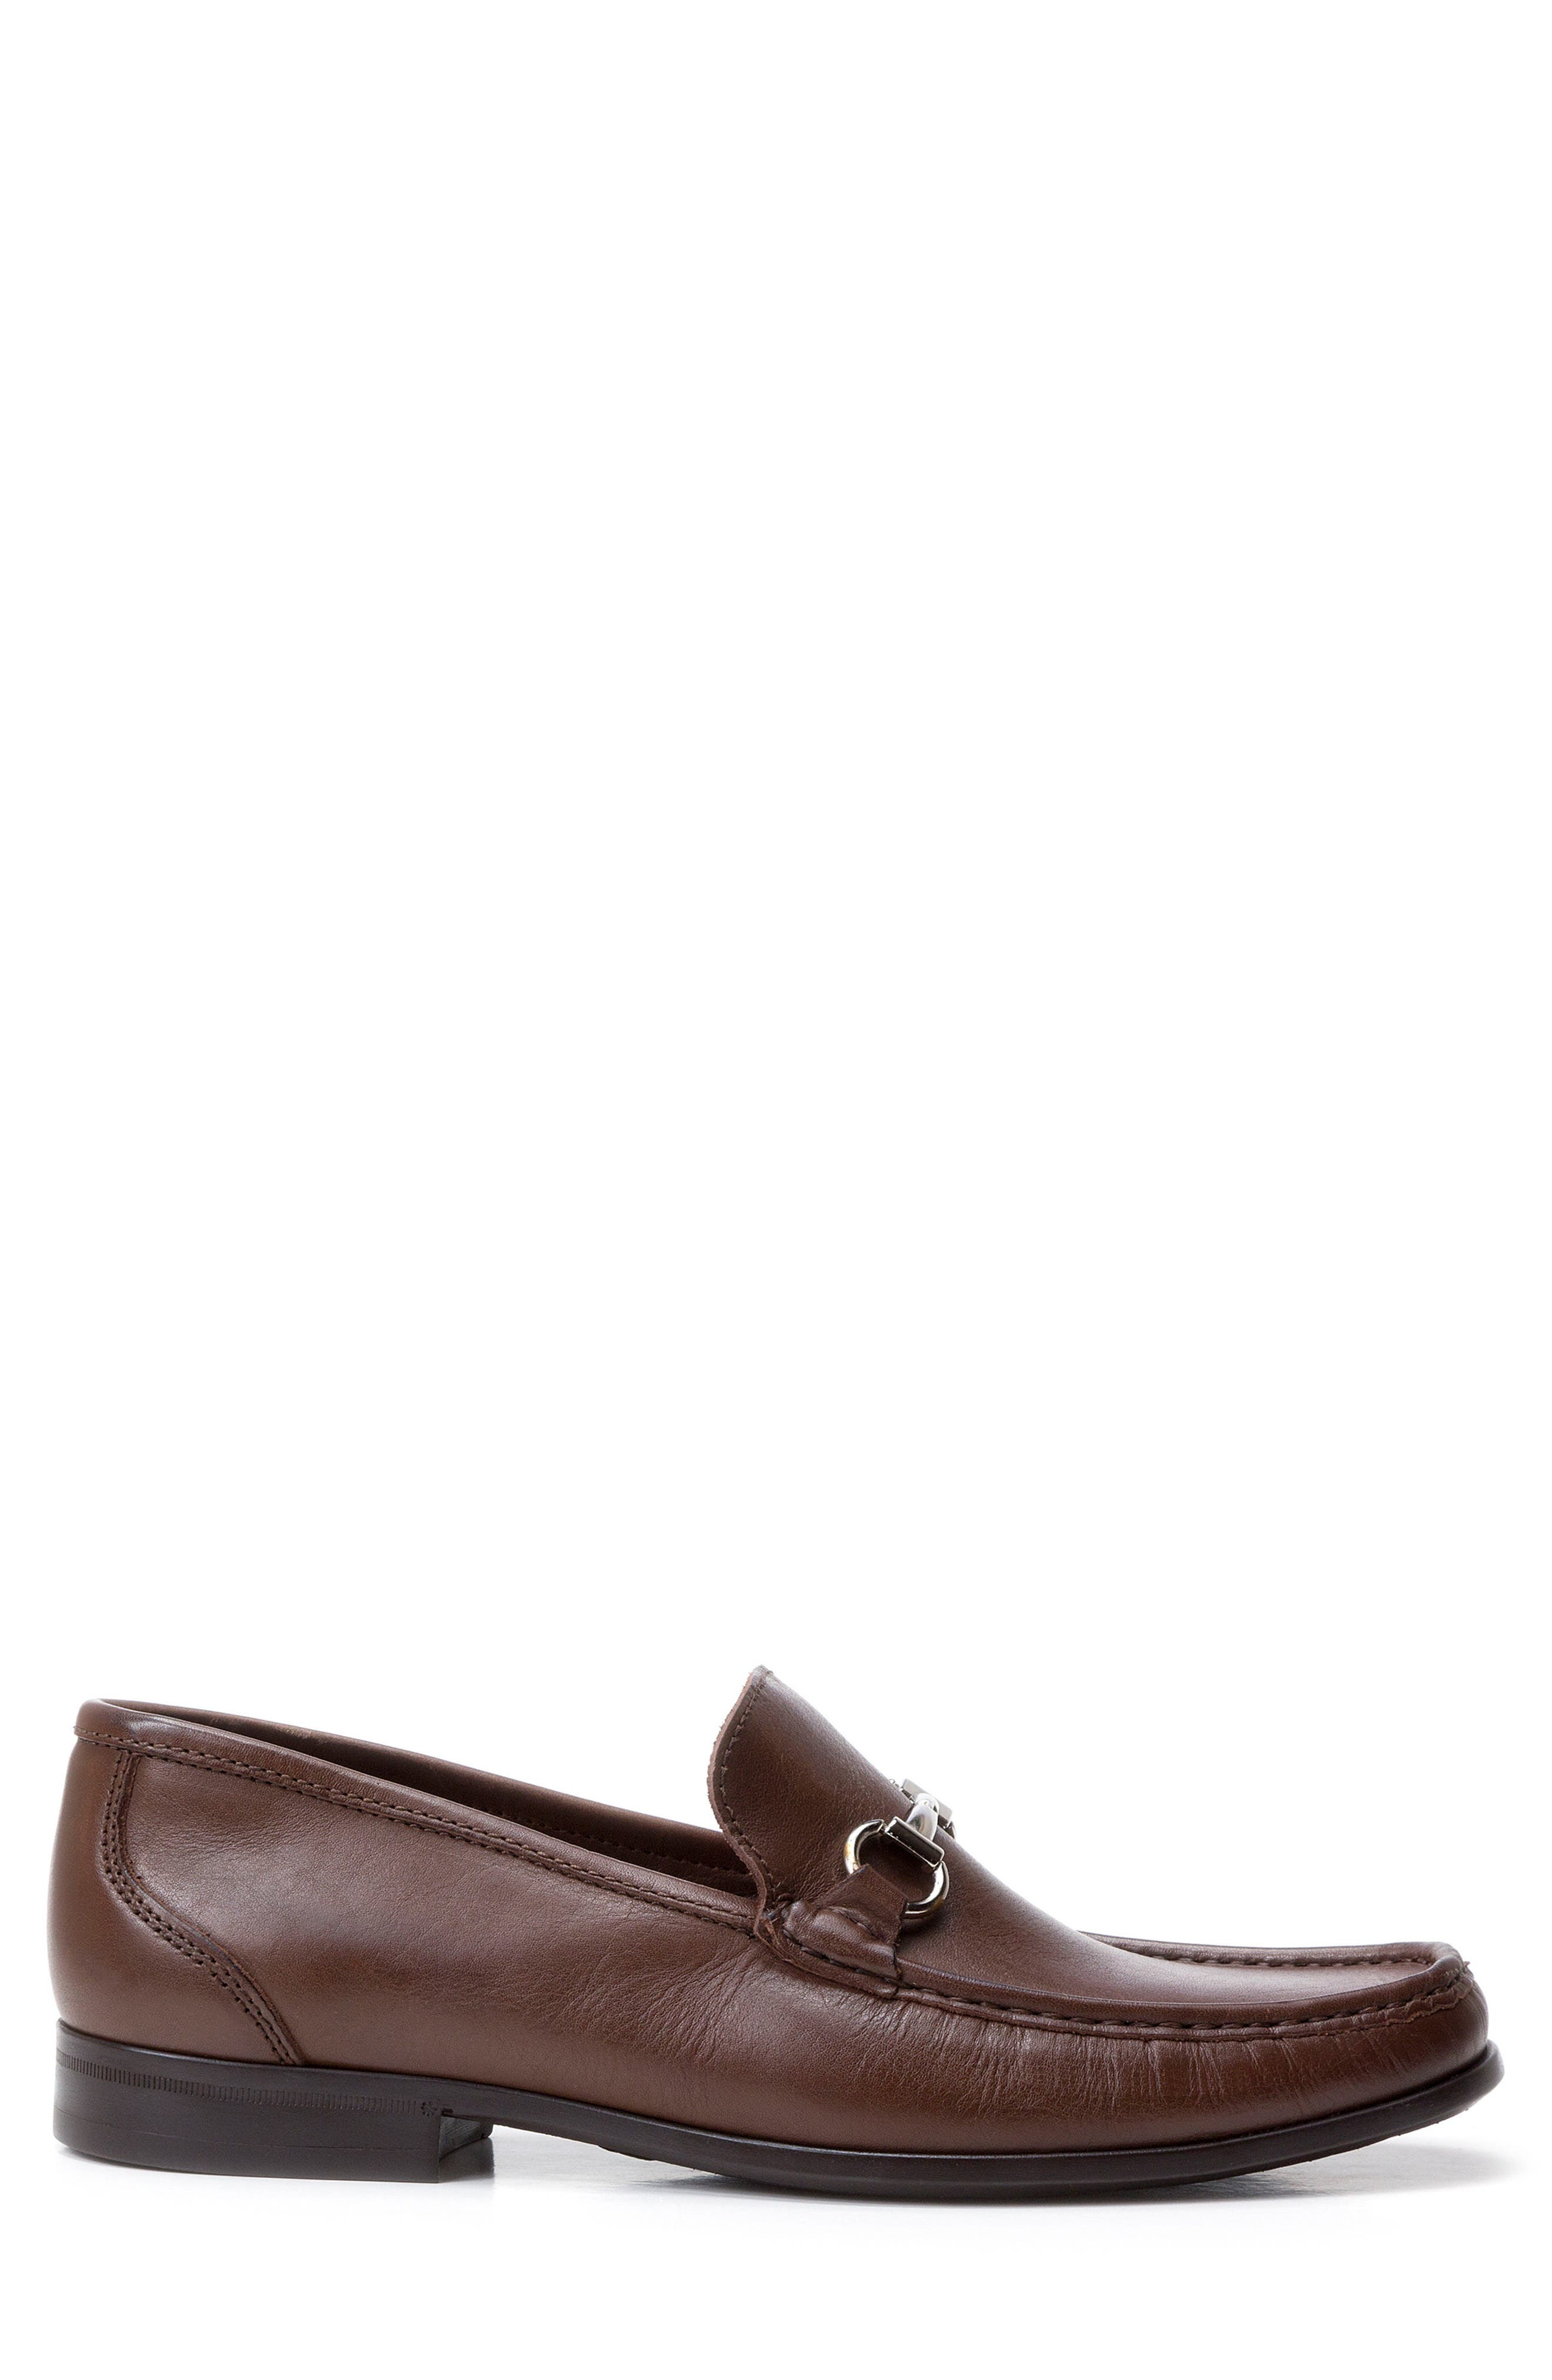 'Malibu' Suede Bit Loafer,                             Alternate thumbnail 3, color,                             Brown Leather